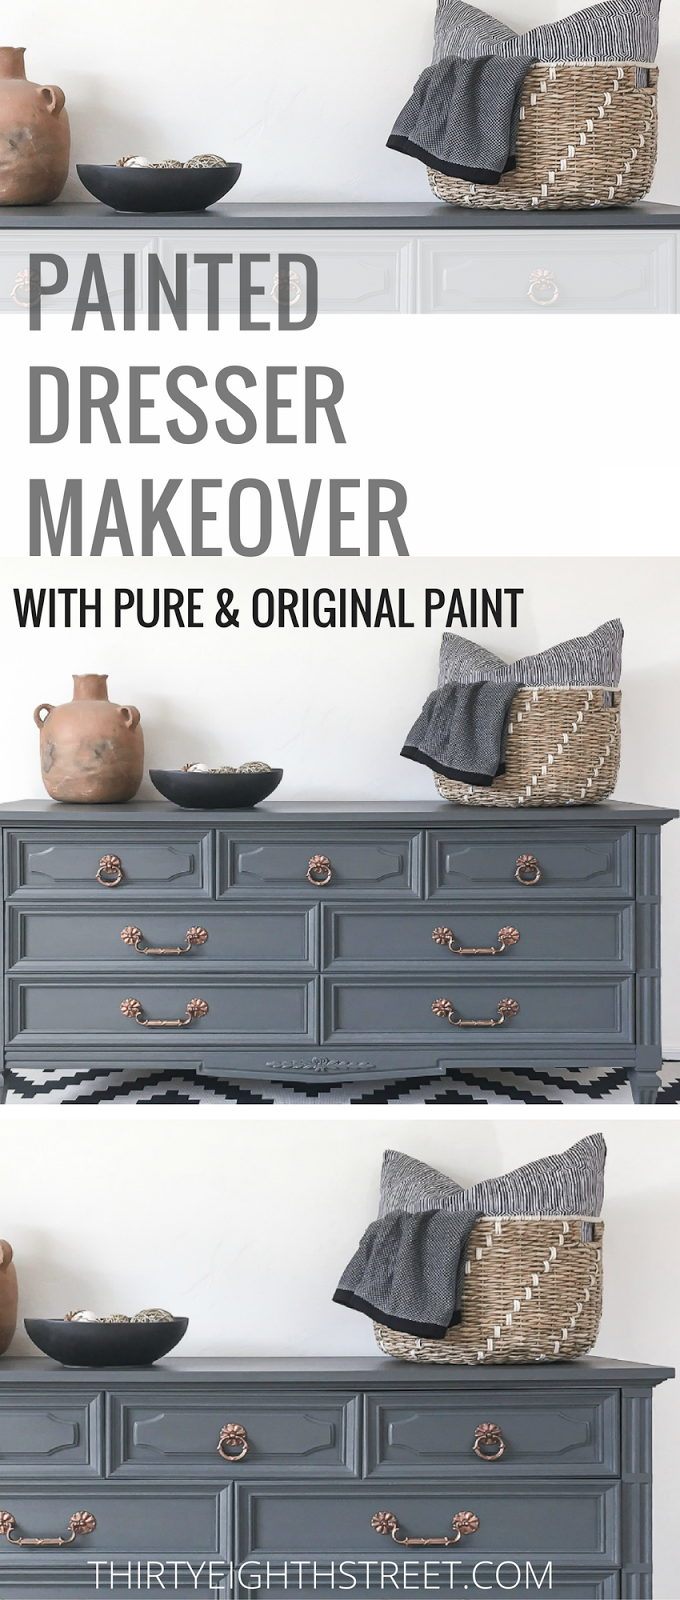 how to paint a dresser, paint your own dresser, painting a dresser with chalk paint, painting a dresser, chalk paint dresser, grey dressers, grey painted dresser